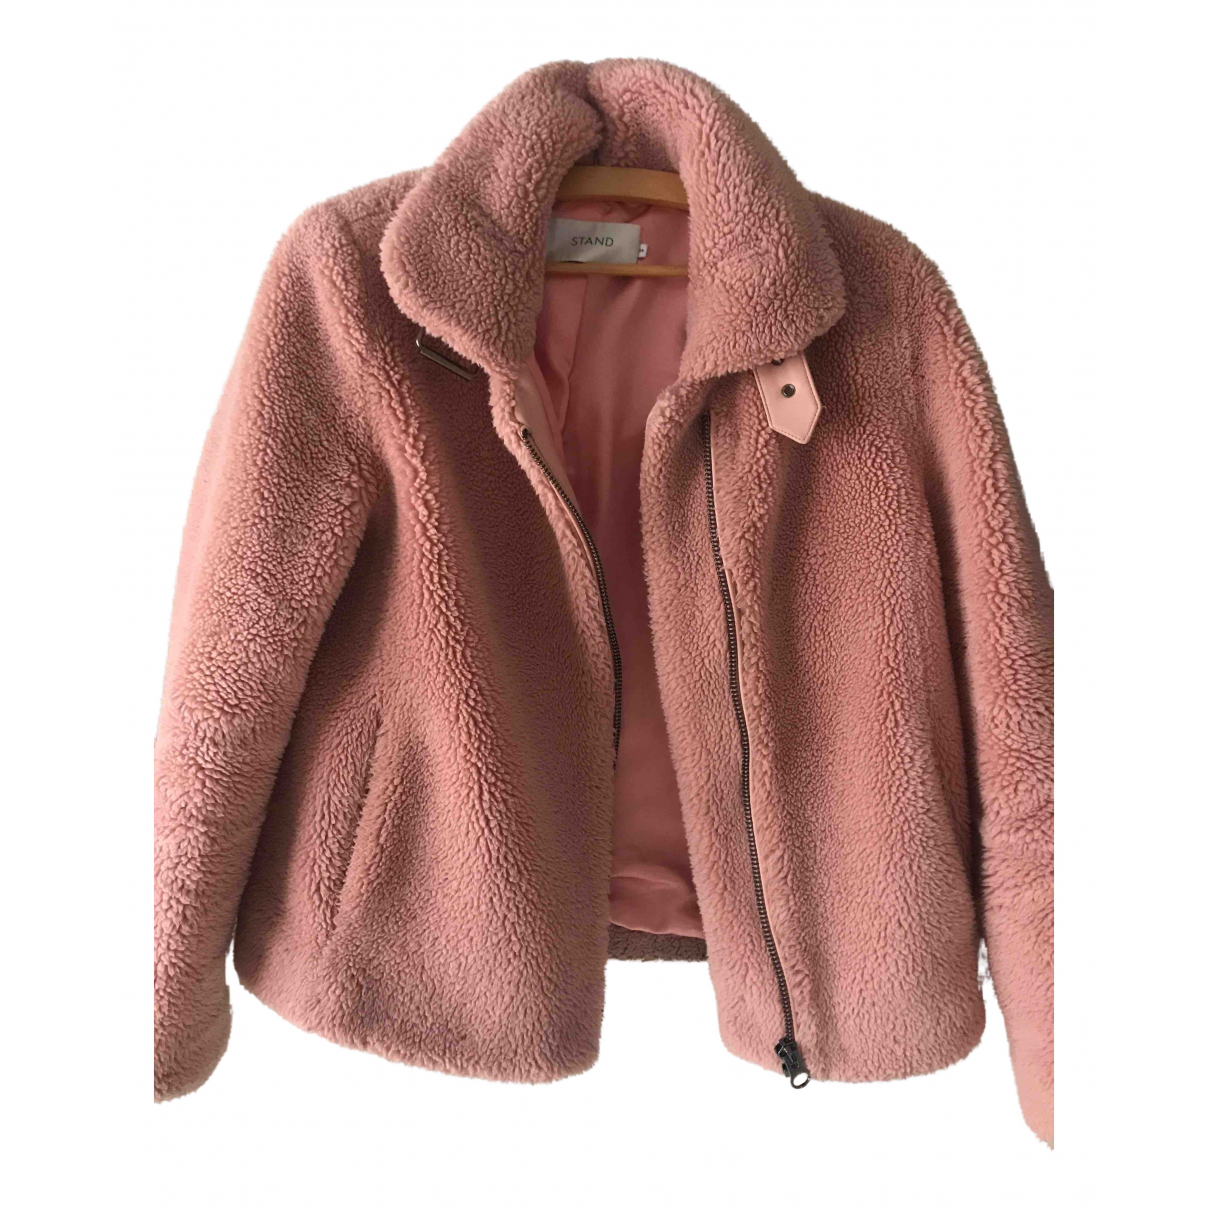 Stand Studio N Pink Faux fur jacket for Women 38 FR